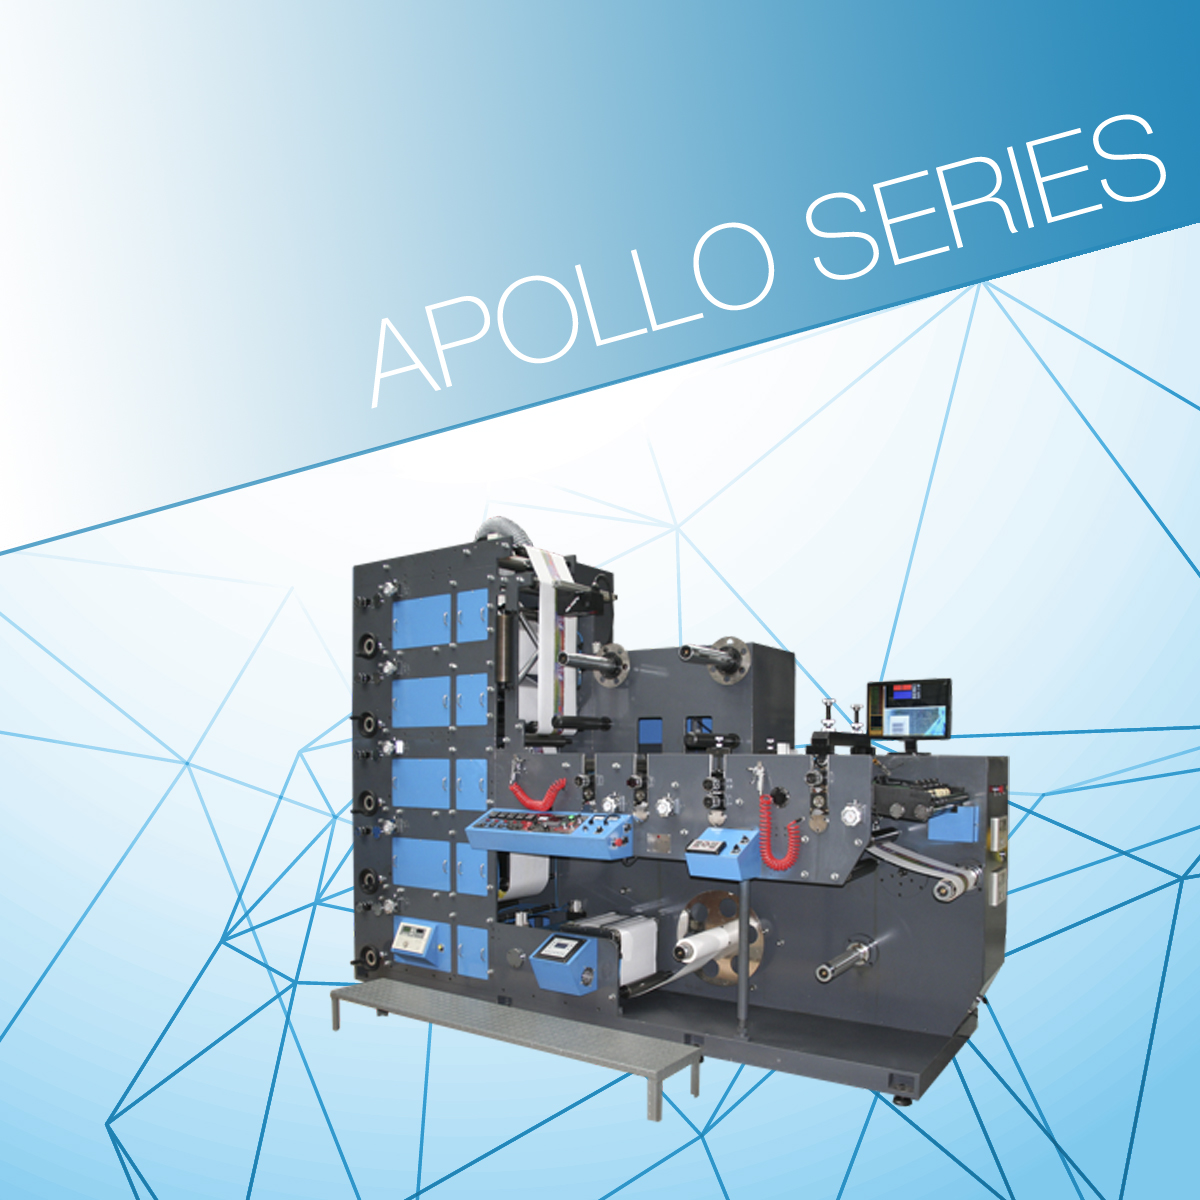 apollo series 2 copy.jpg